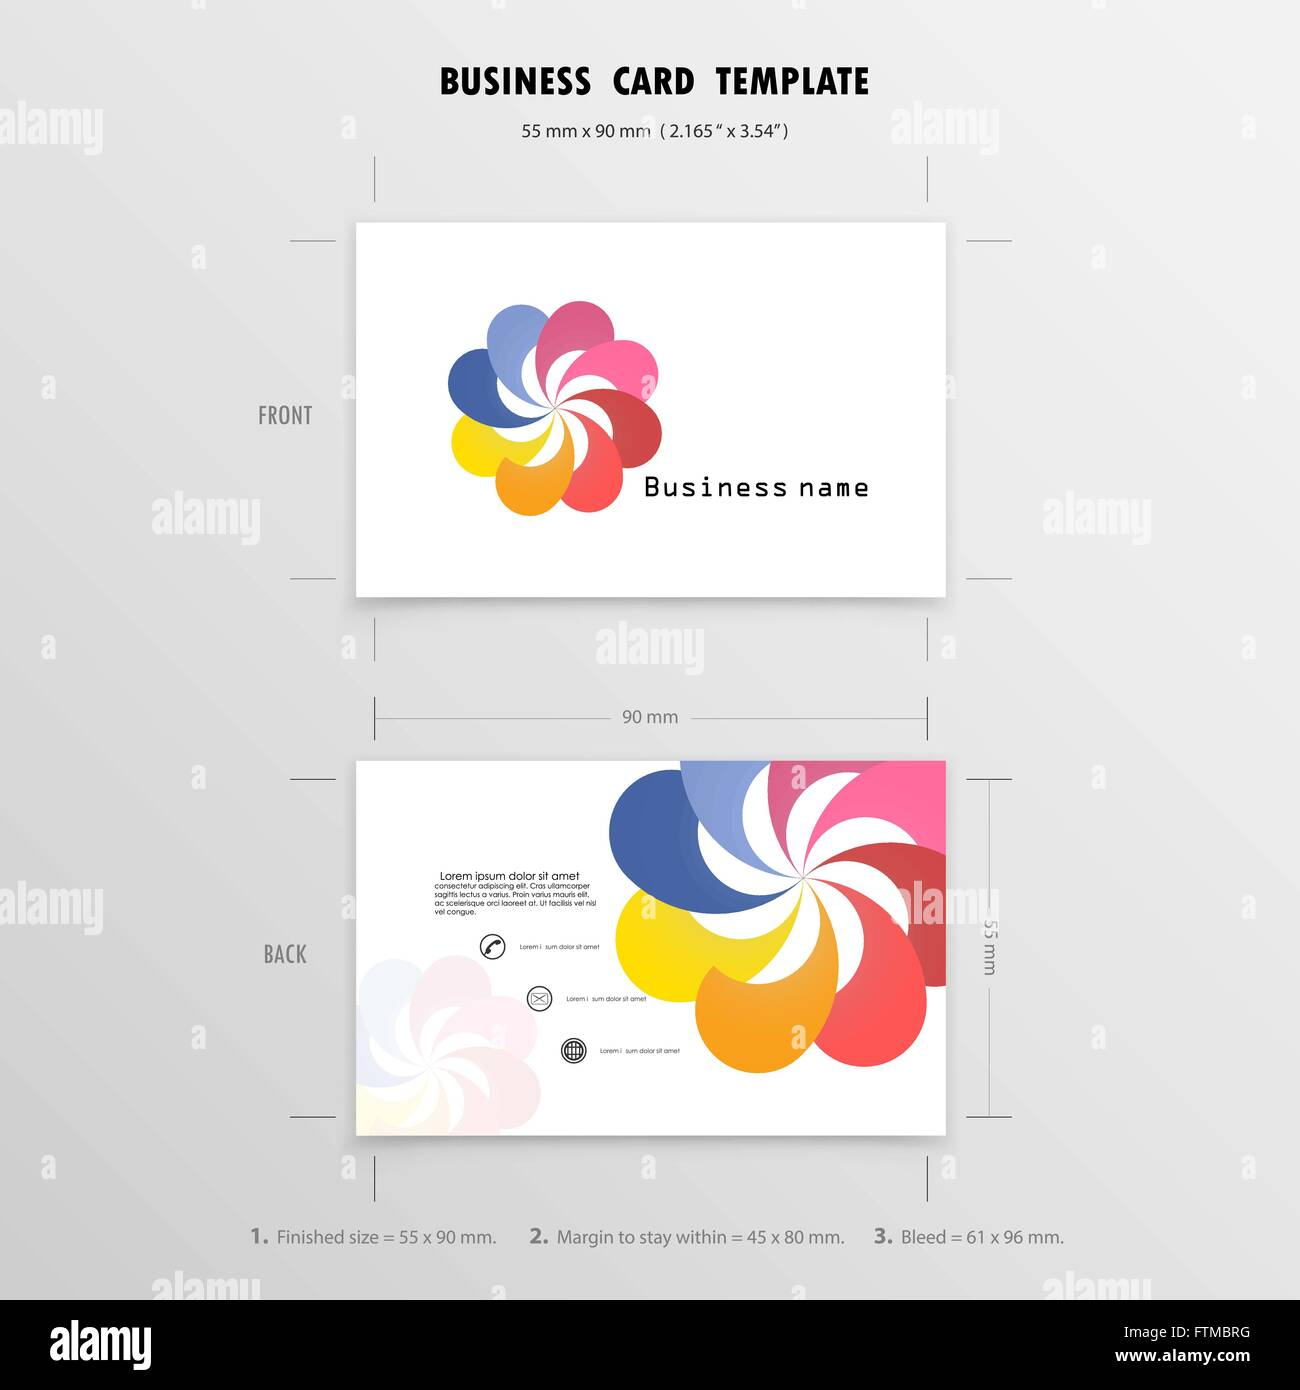 Abstract creative business cards design template name cards symbol abstract creative business cards design template name cards symbol size 55 mm x 90 mm 2165 in x 354 inctor illustration reheart Choice Image